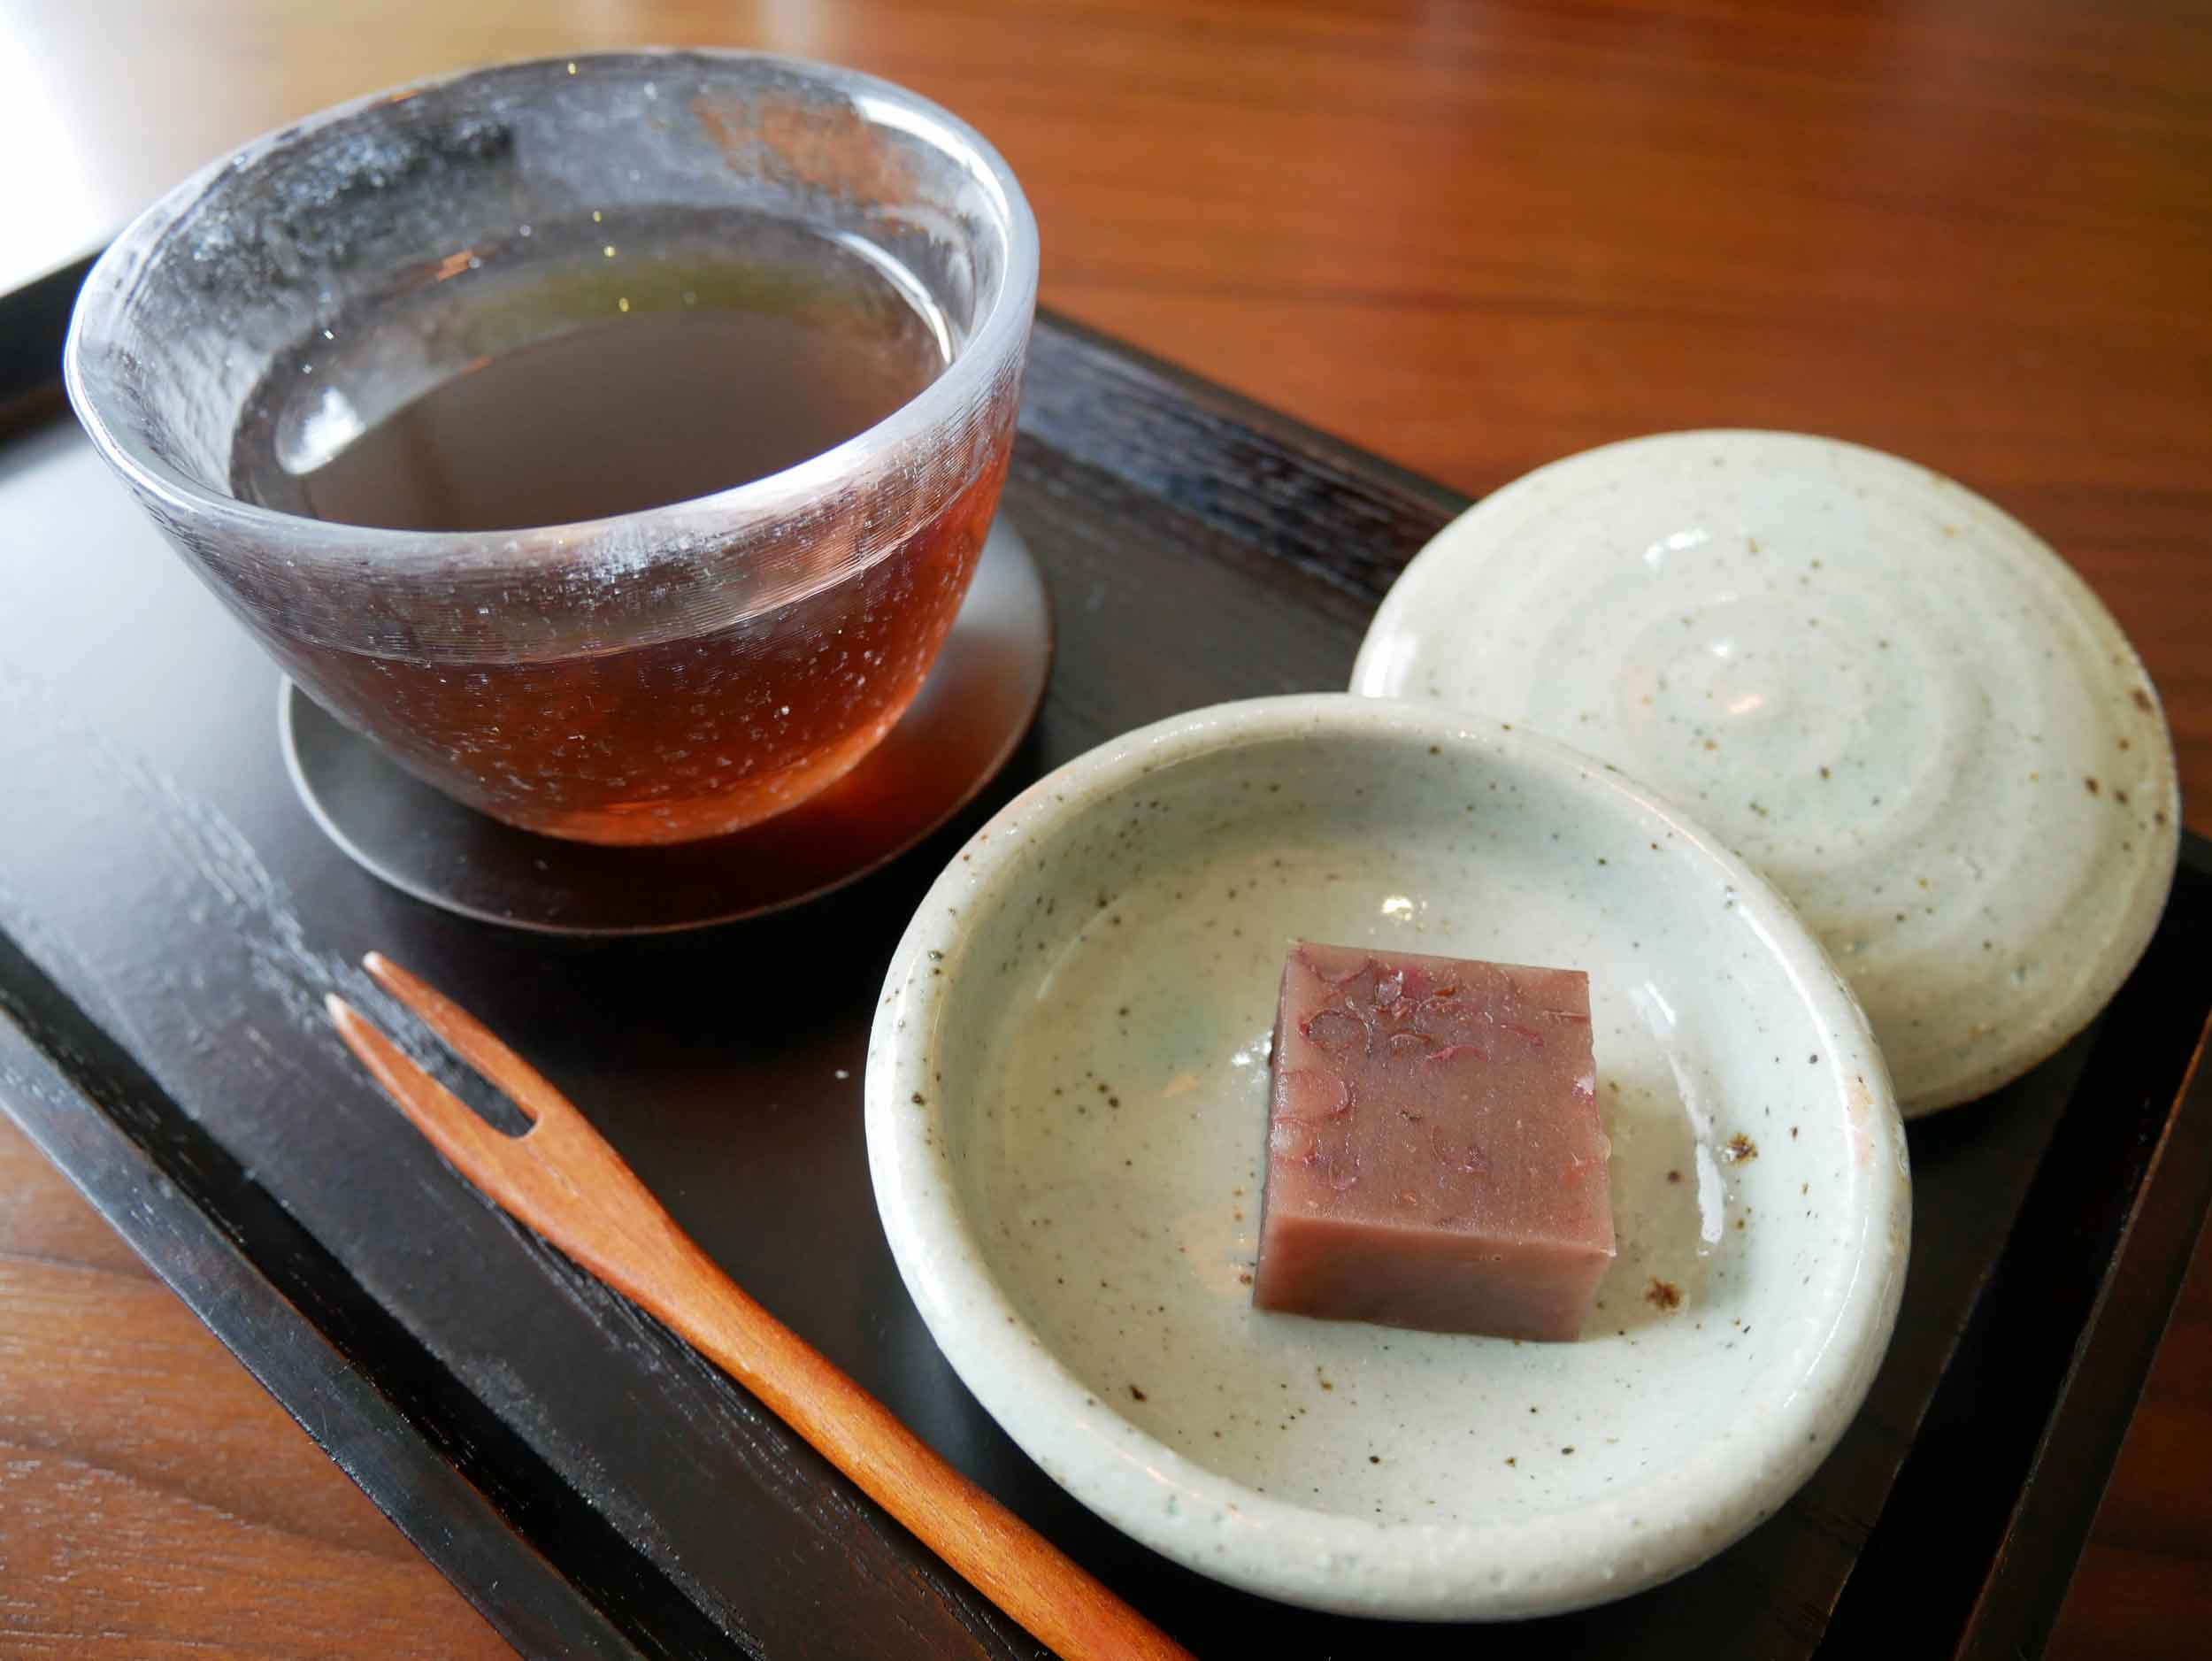 Finally, a simple dessert, or  ipgasim , of red bean jelly and toasted black bean tea.